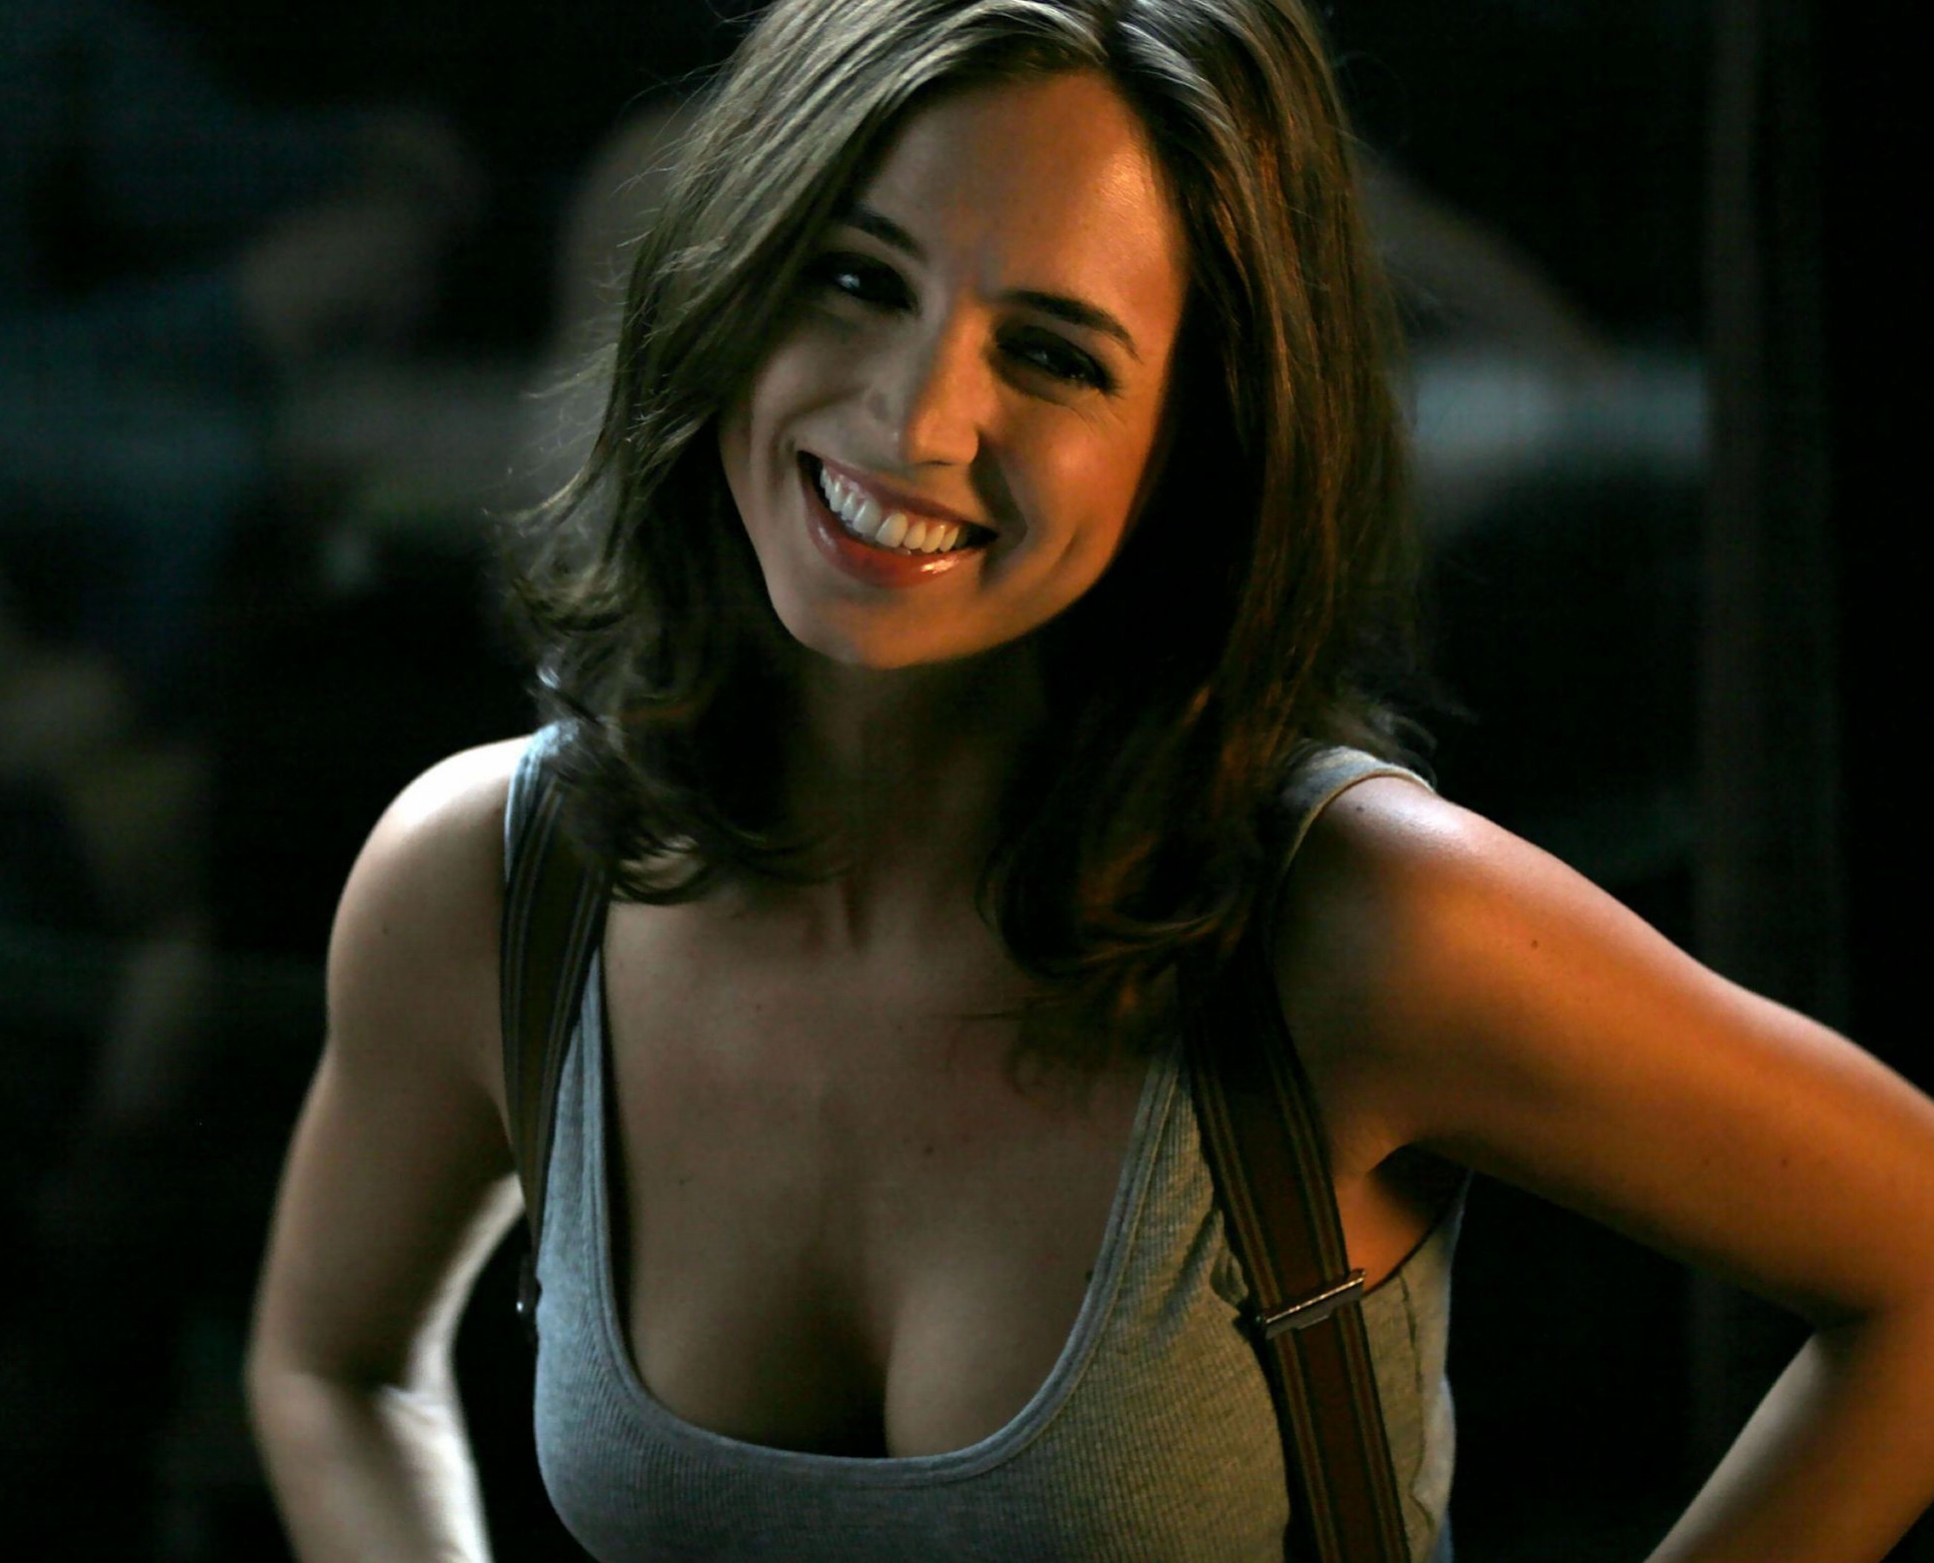 the-black-company-book-series-is-getting-series-adaptation-by-eliza-dushku-and-david-goyer33